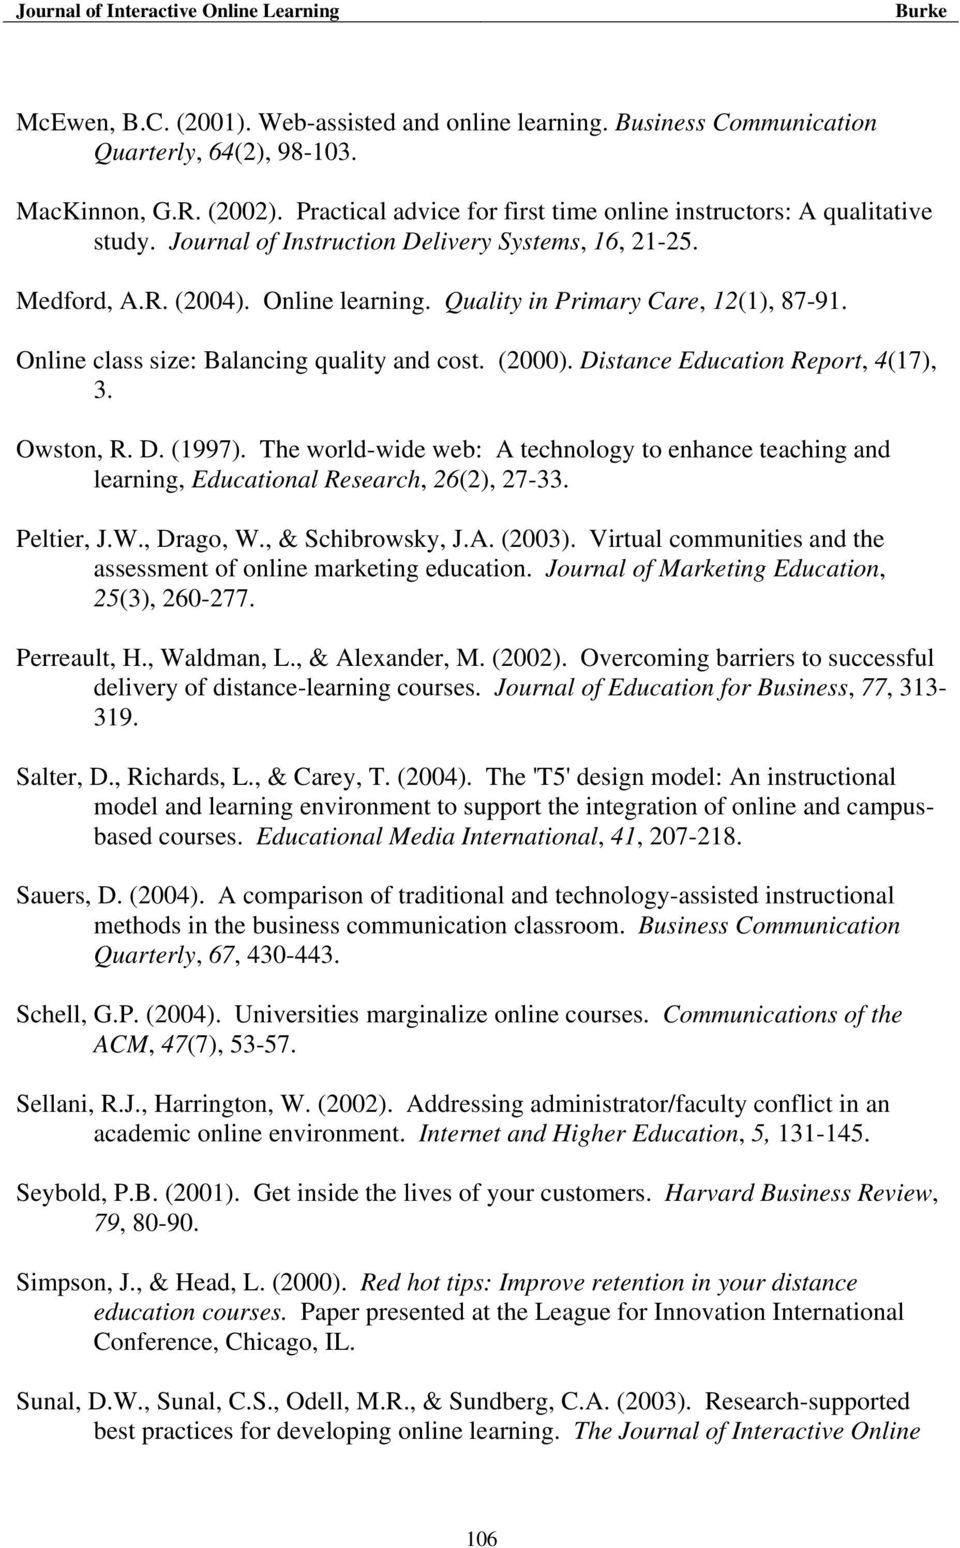 Distance Education Report, 4(17), 3. Owston, R. D. (1997). The world-wide web: A technology to enhance teaching and learning, Educational Research, 26(2), 27-33. Peltier, J.W., Drago, W.